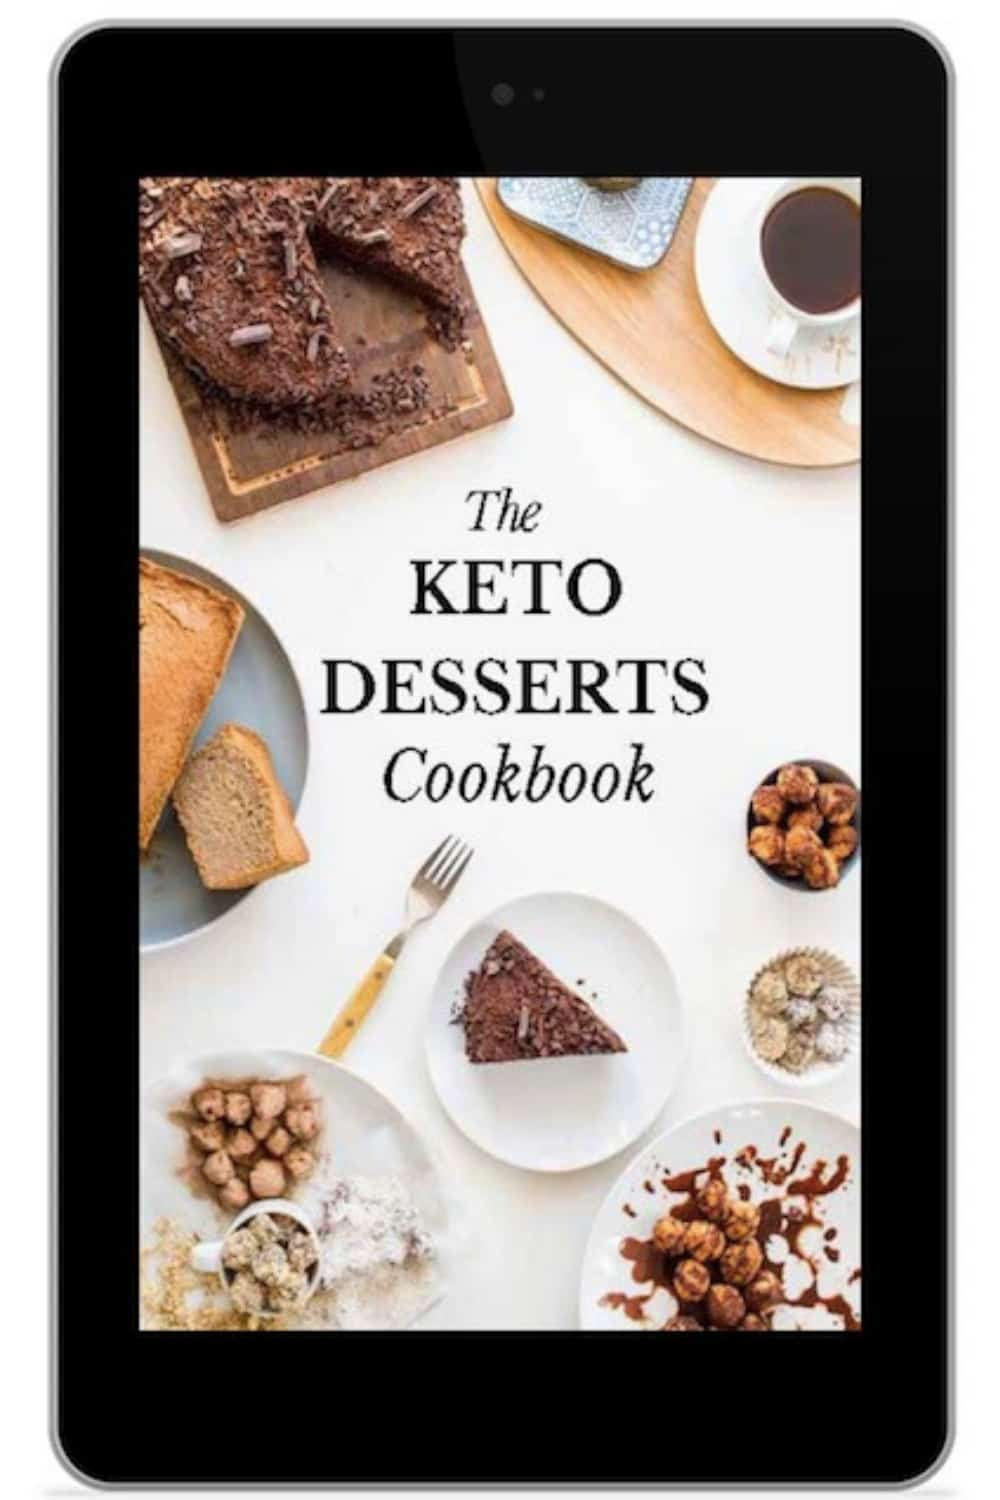 the keto desserts cookbook on iPad